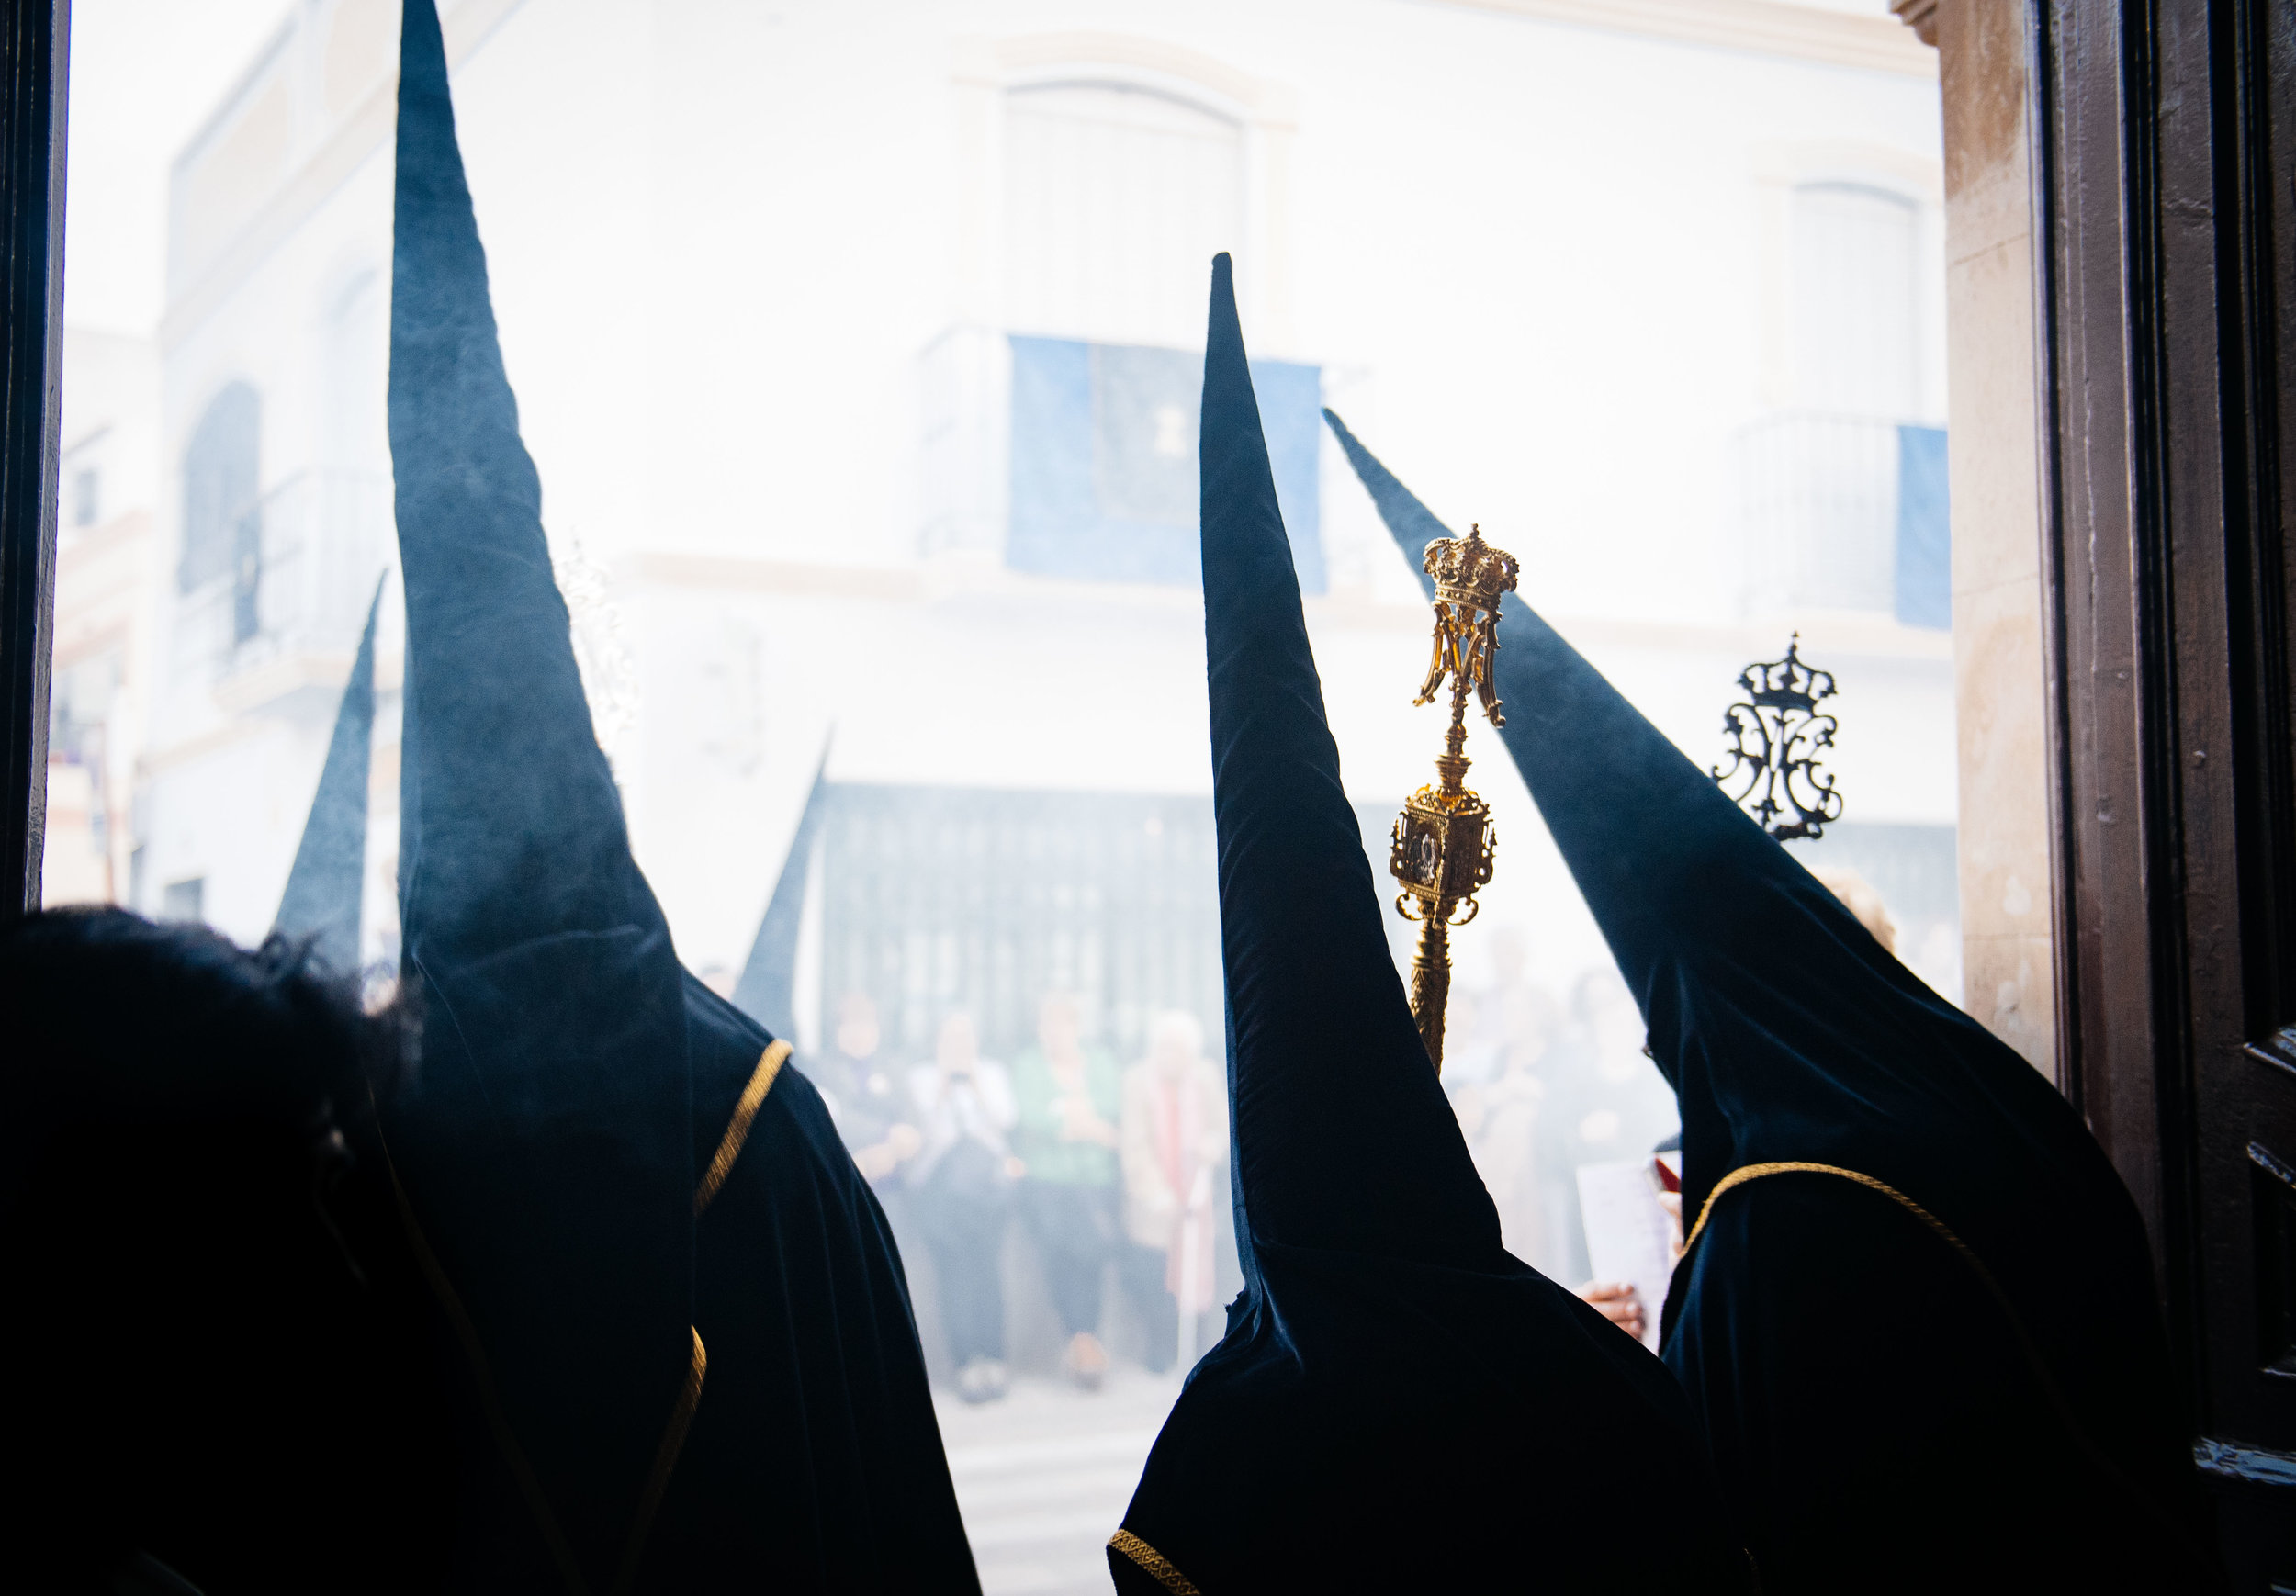 Penitents walk through the church door to meet the public and walk through the streets.